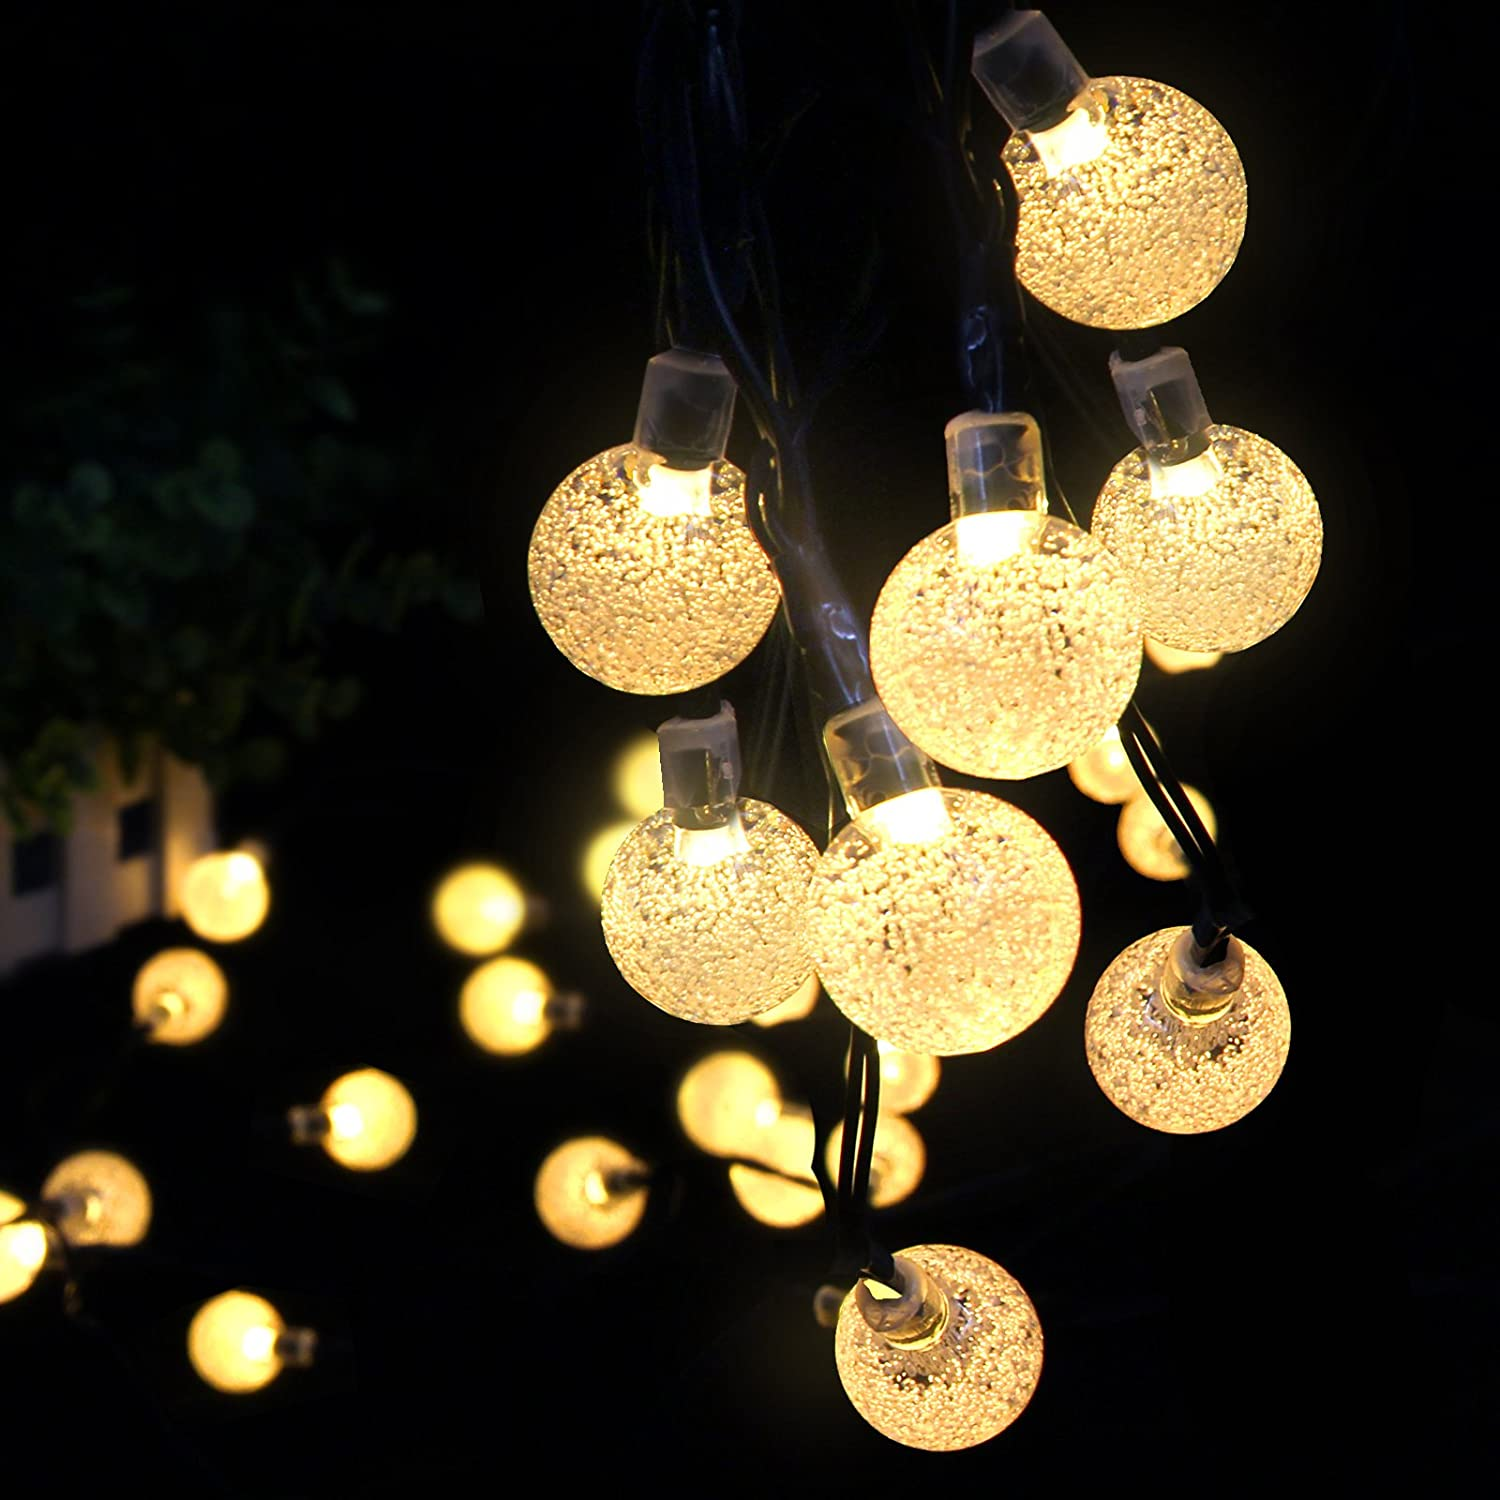 Solar outdoor string lights ascher 30 led fairy light warm white solar outdoor string lights ascher 30 led fairy light warm white crystal ball christmas globe lights for outdoor yard garden homegarden pathchrismas aloadofball